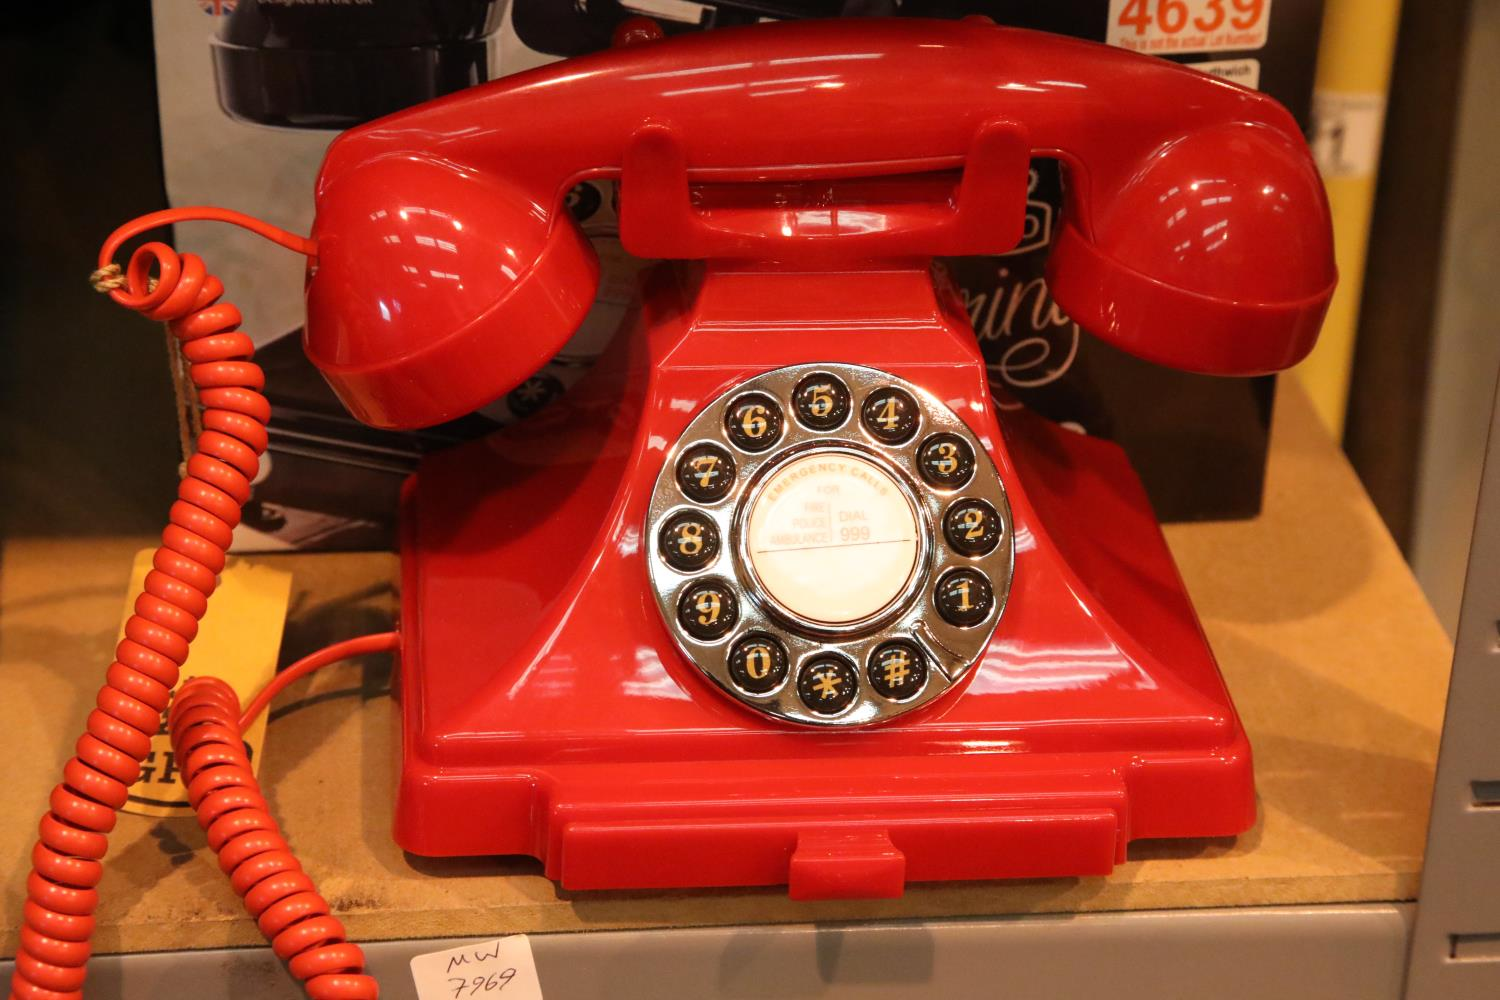 Red GPO Carrington, push button telephone in 1920s styling with pull-out pad tray; compatible with